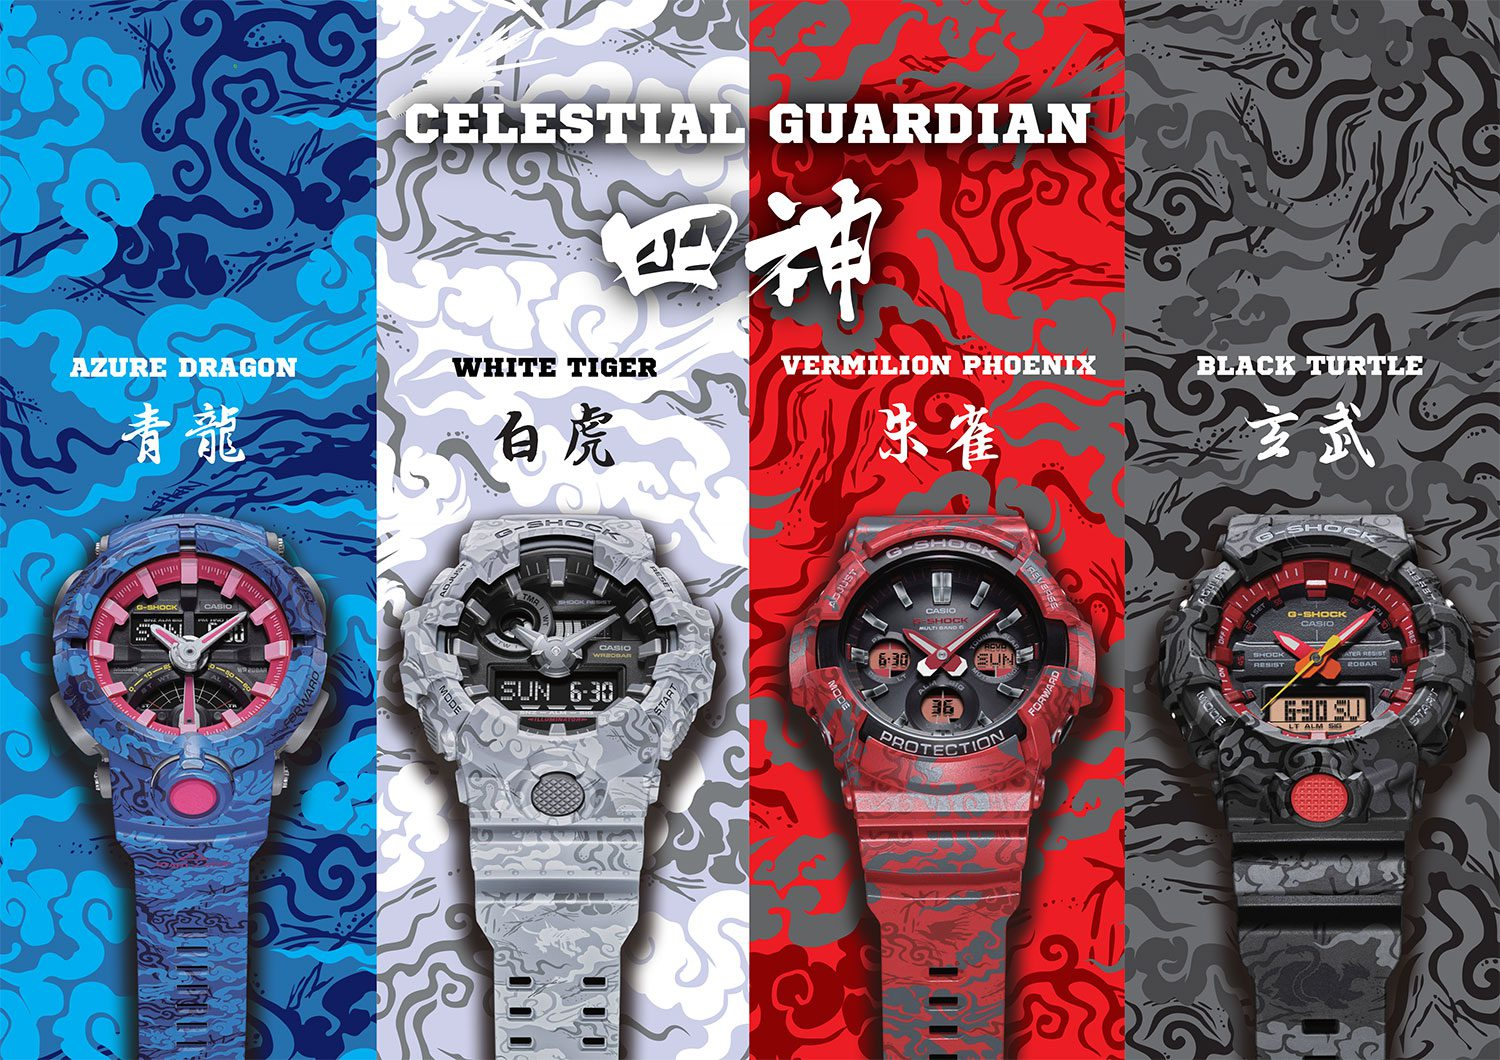 CASIO Releases G-SHOCK Celestial Guardian Series